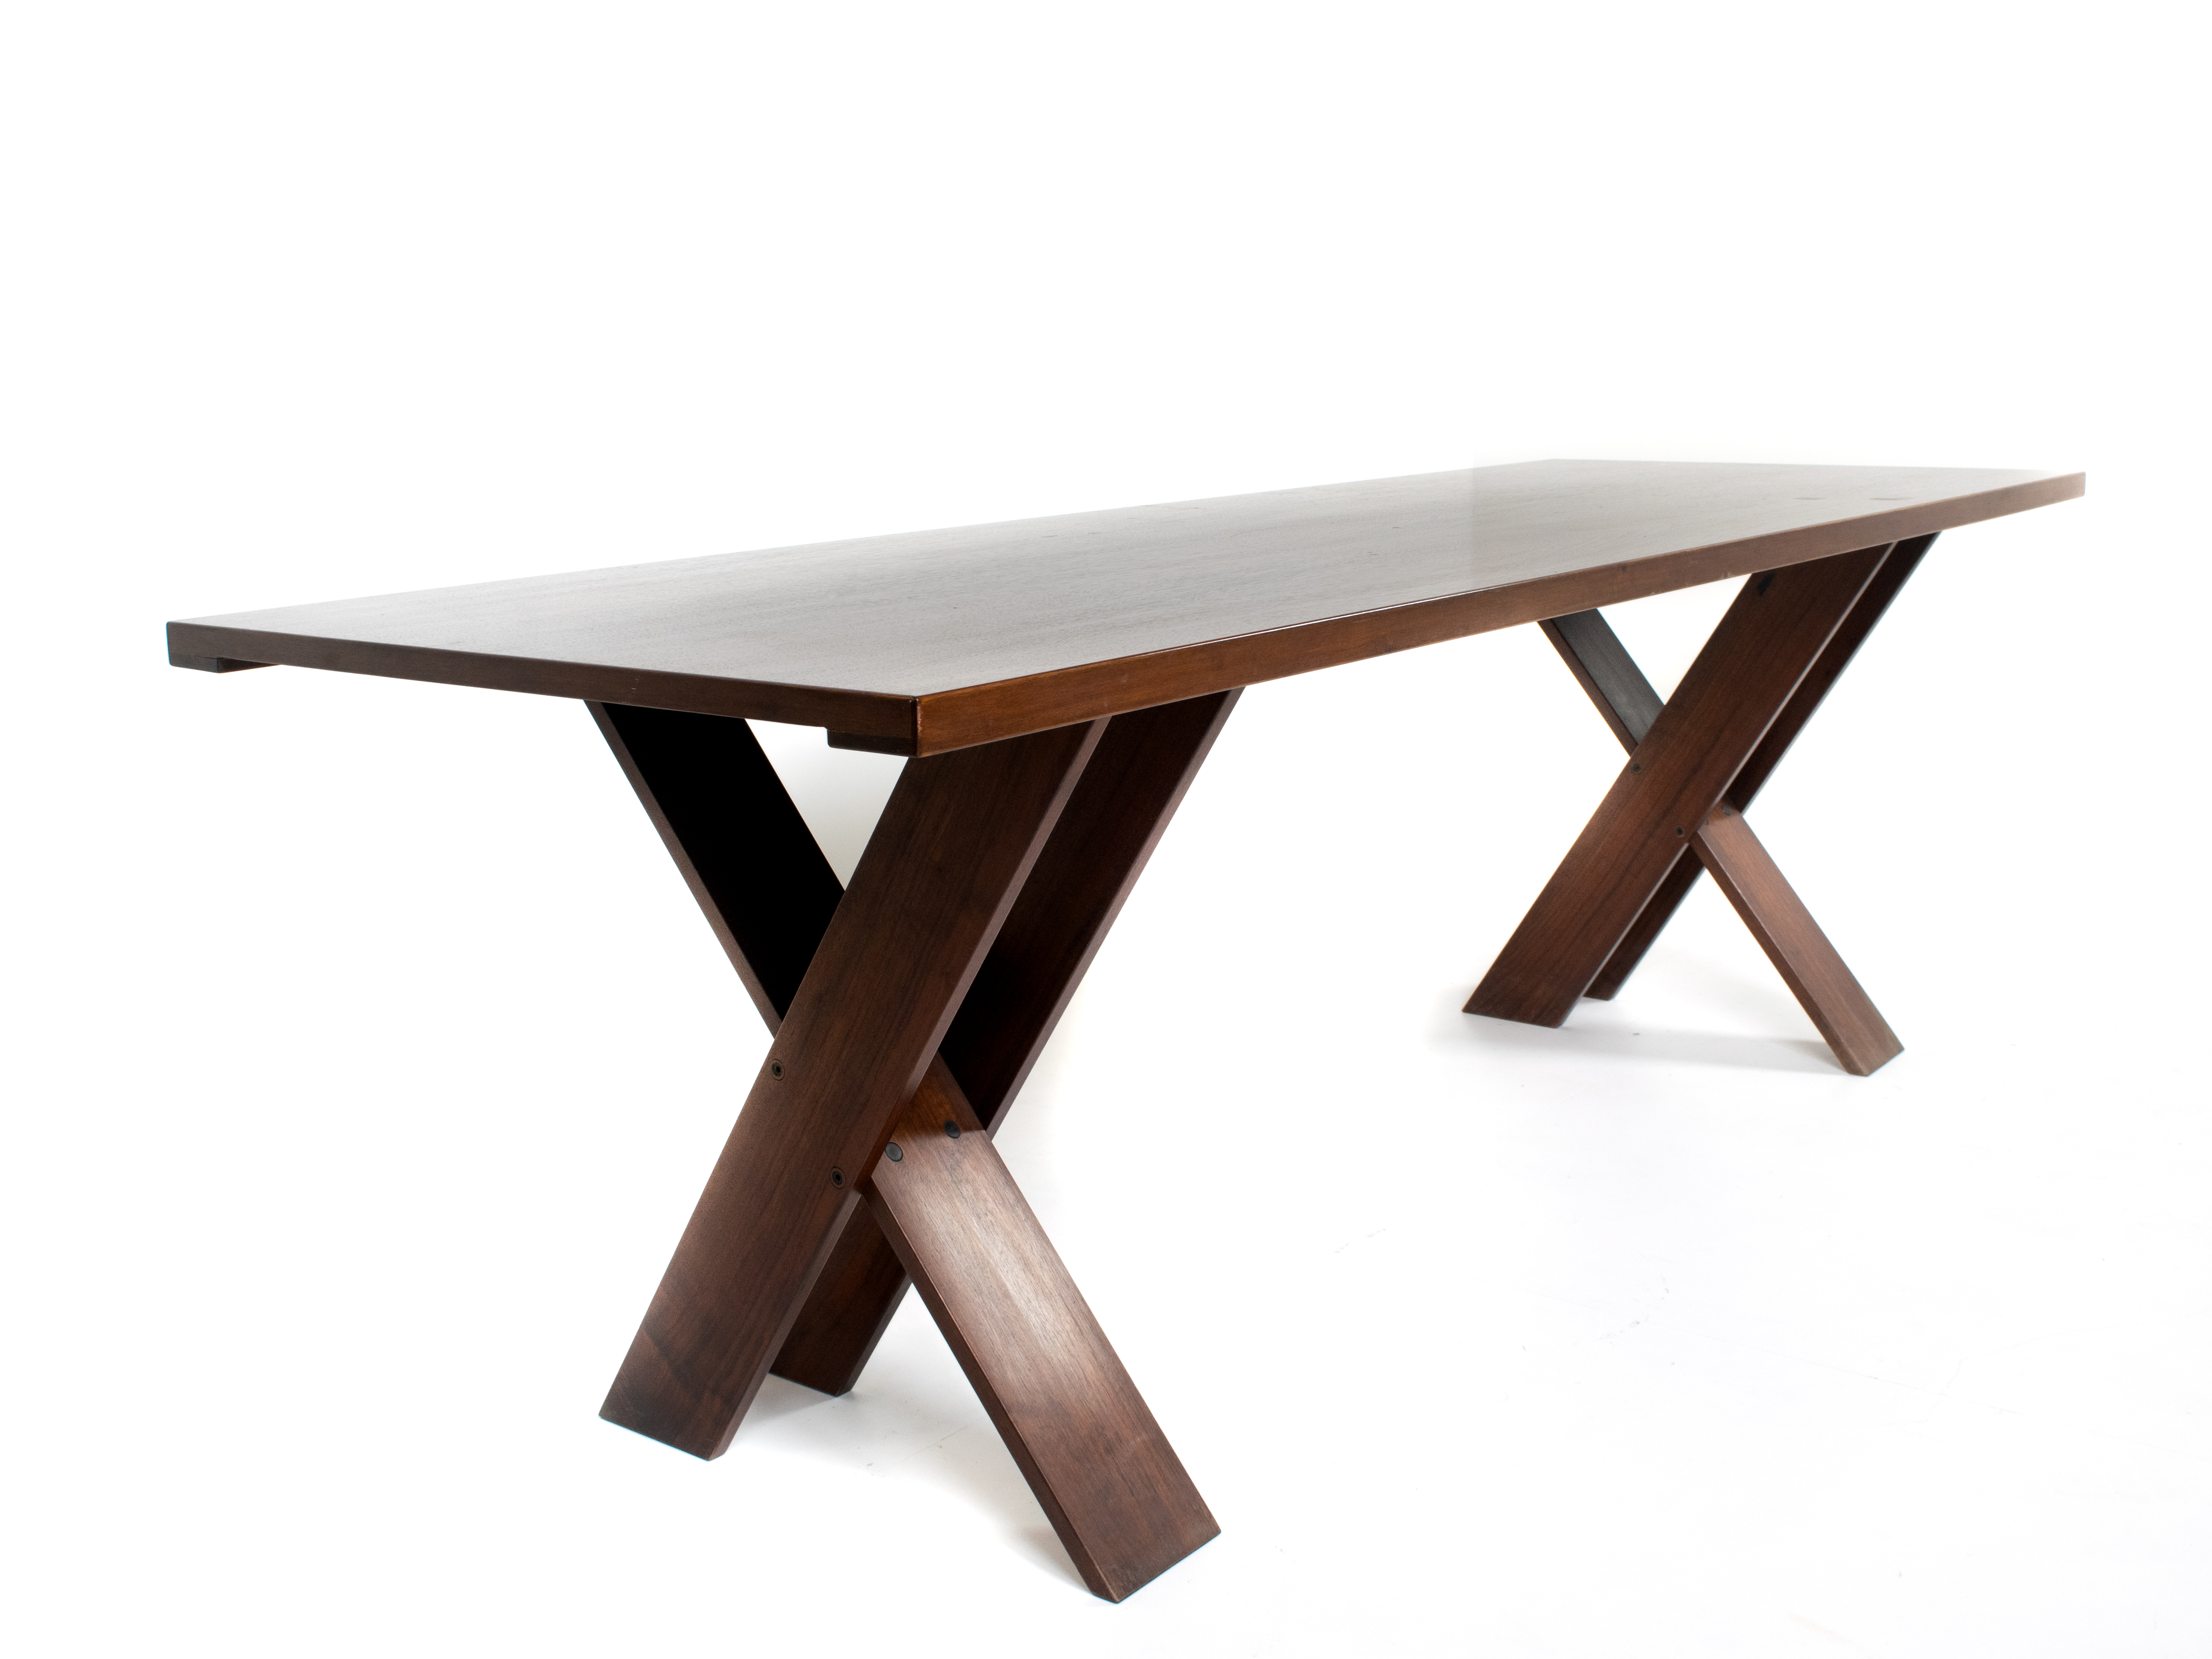 Marco Zanuso Walnut Dining Table TL 58 for Poggi, Italy 1970s